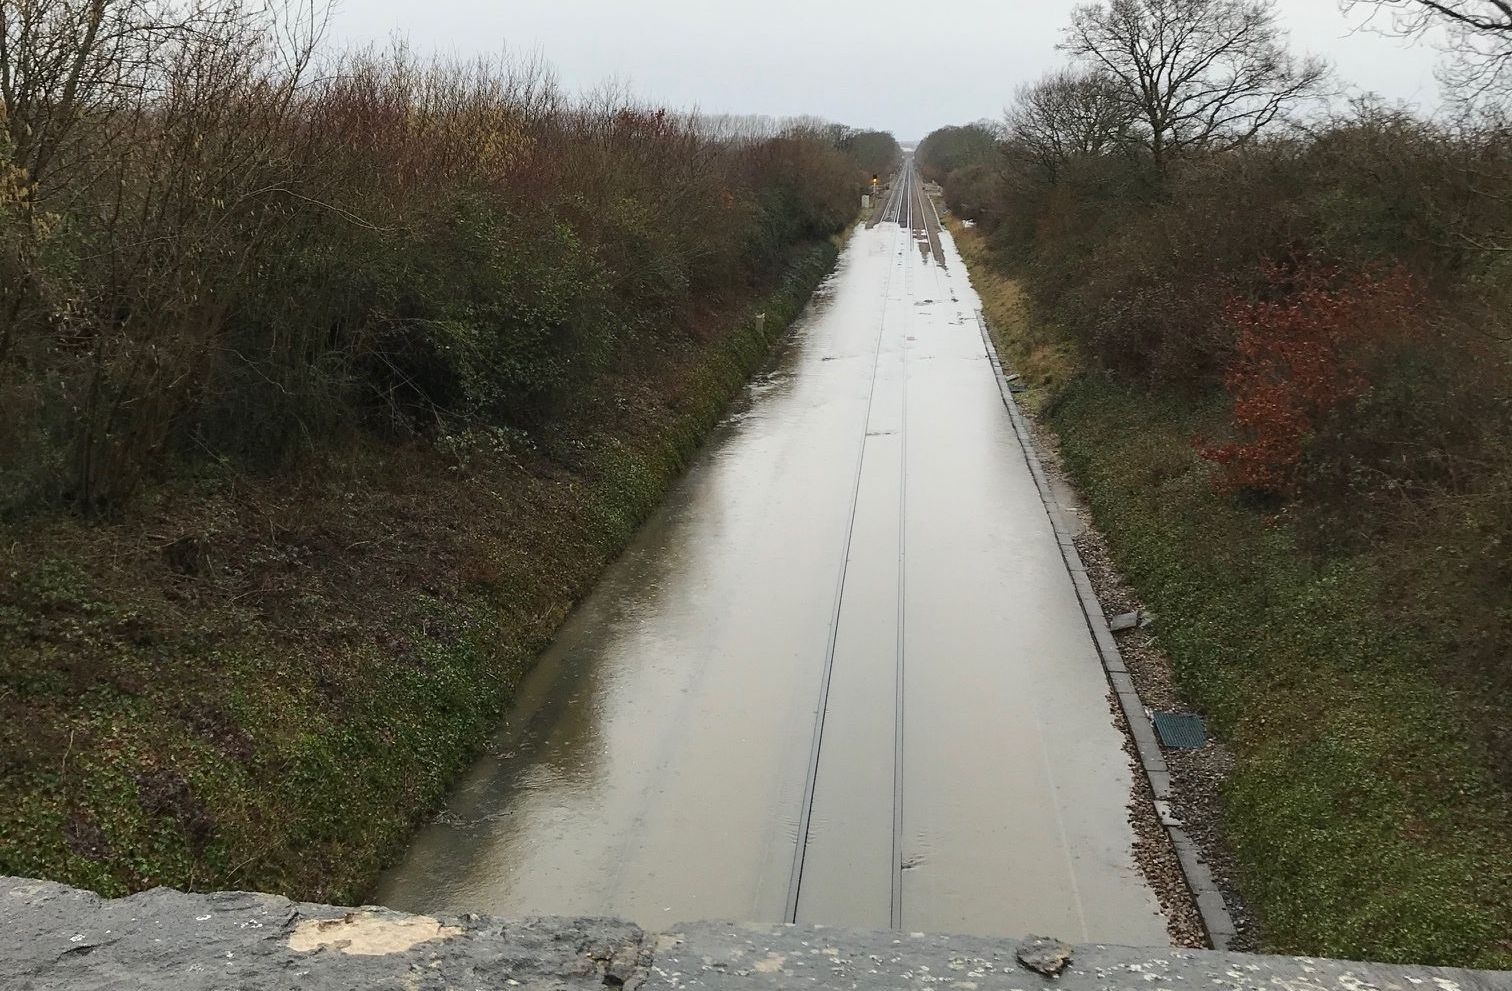 Storm Dennis: Live updates as all trains between Southampton and Bournemouth are halted due to flooding on the tracks